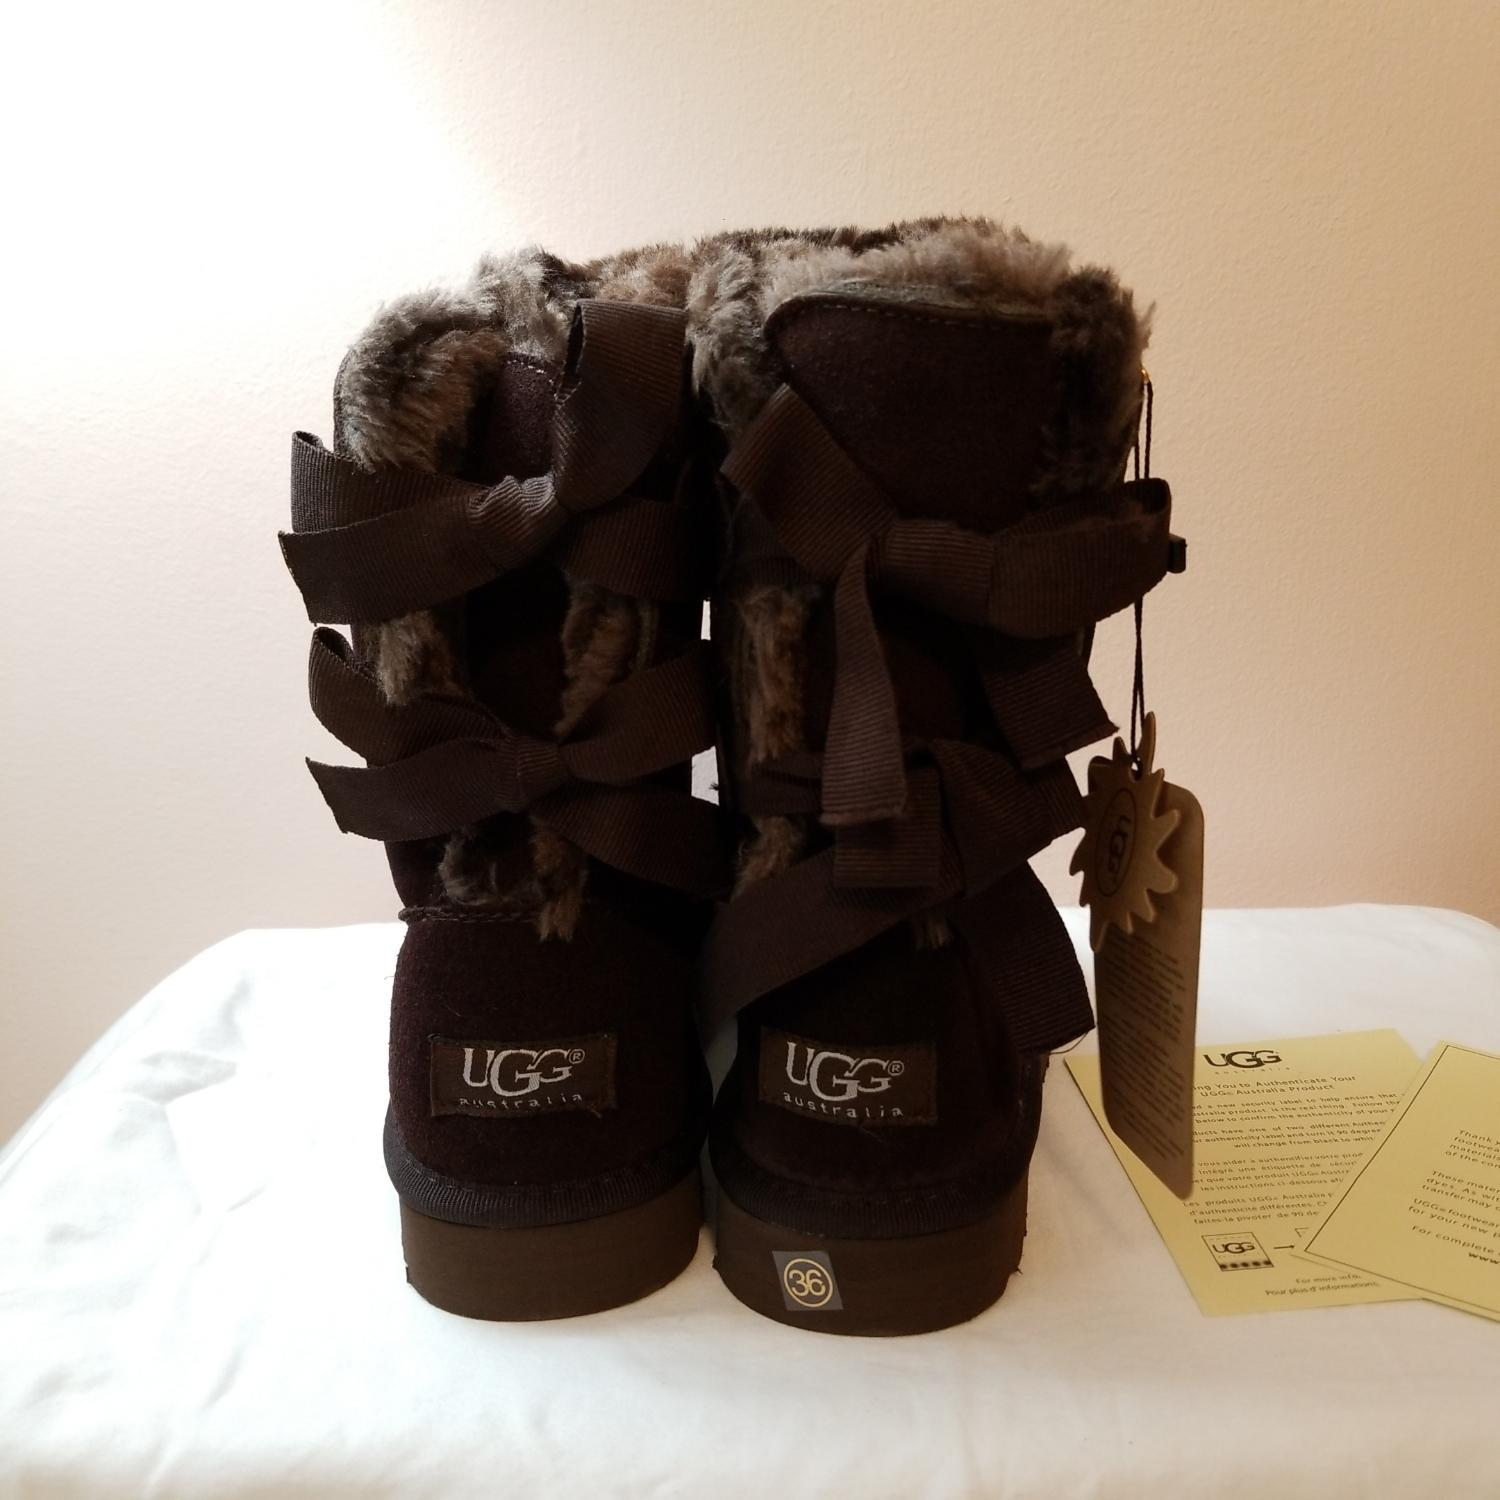 UGG Australia Dark Brown With Bows Boots/Booties